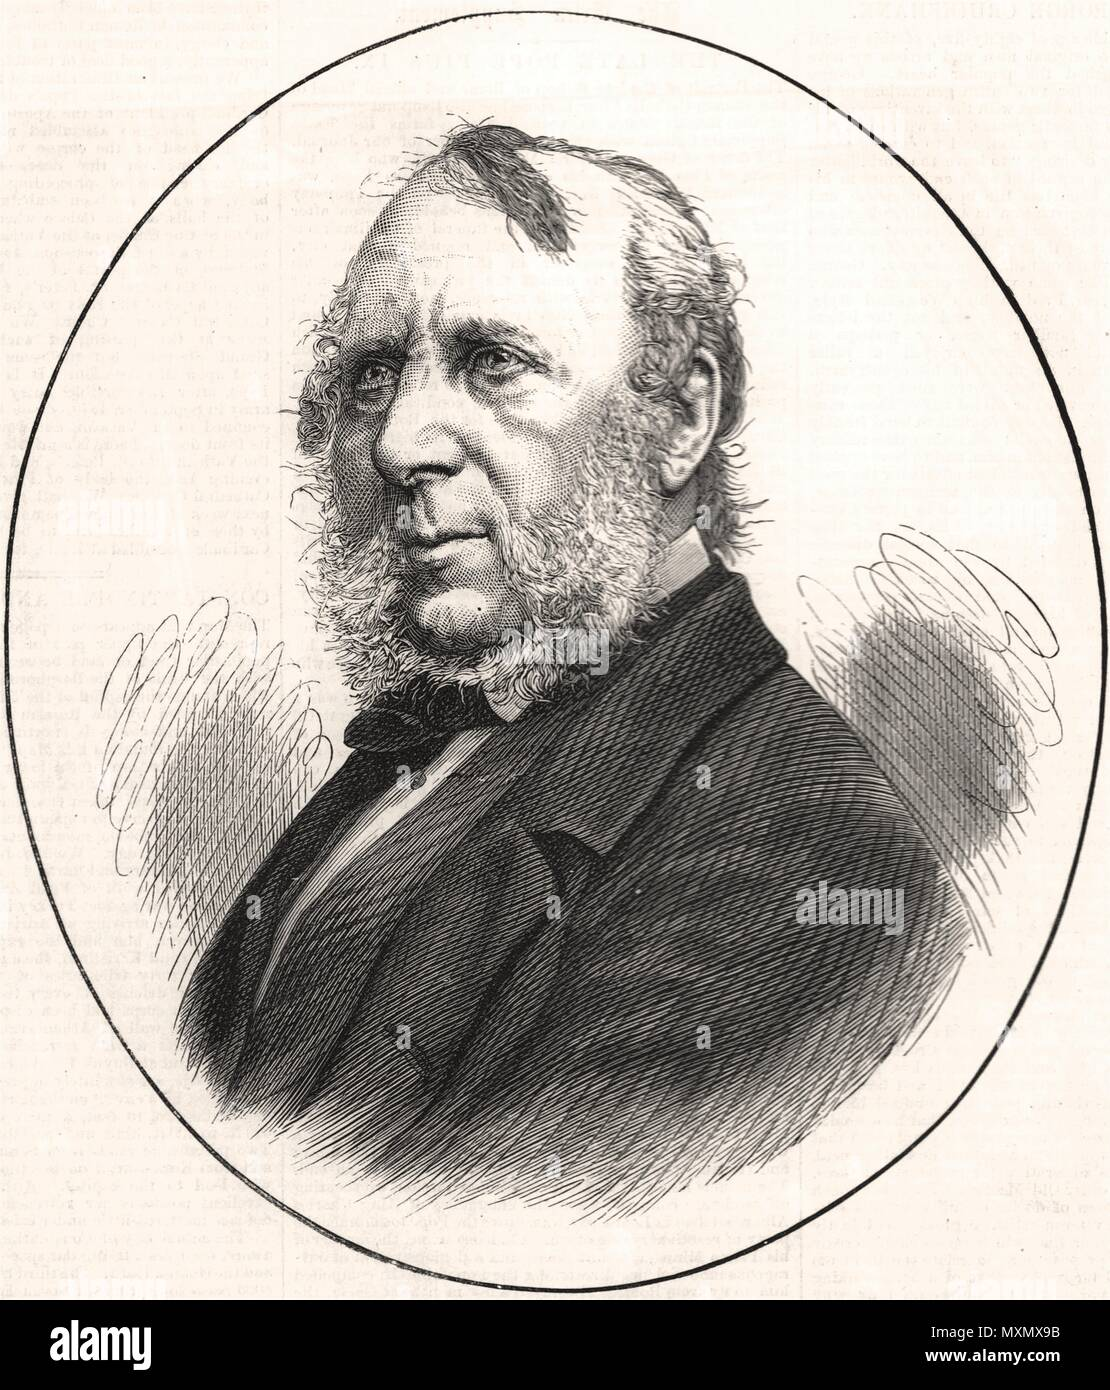 The late Mr. George Cruikshank. Portraits 1878. The Illustrated London News - Stock Image